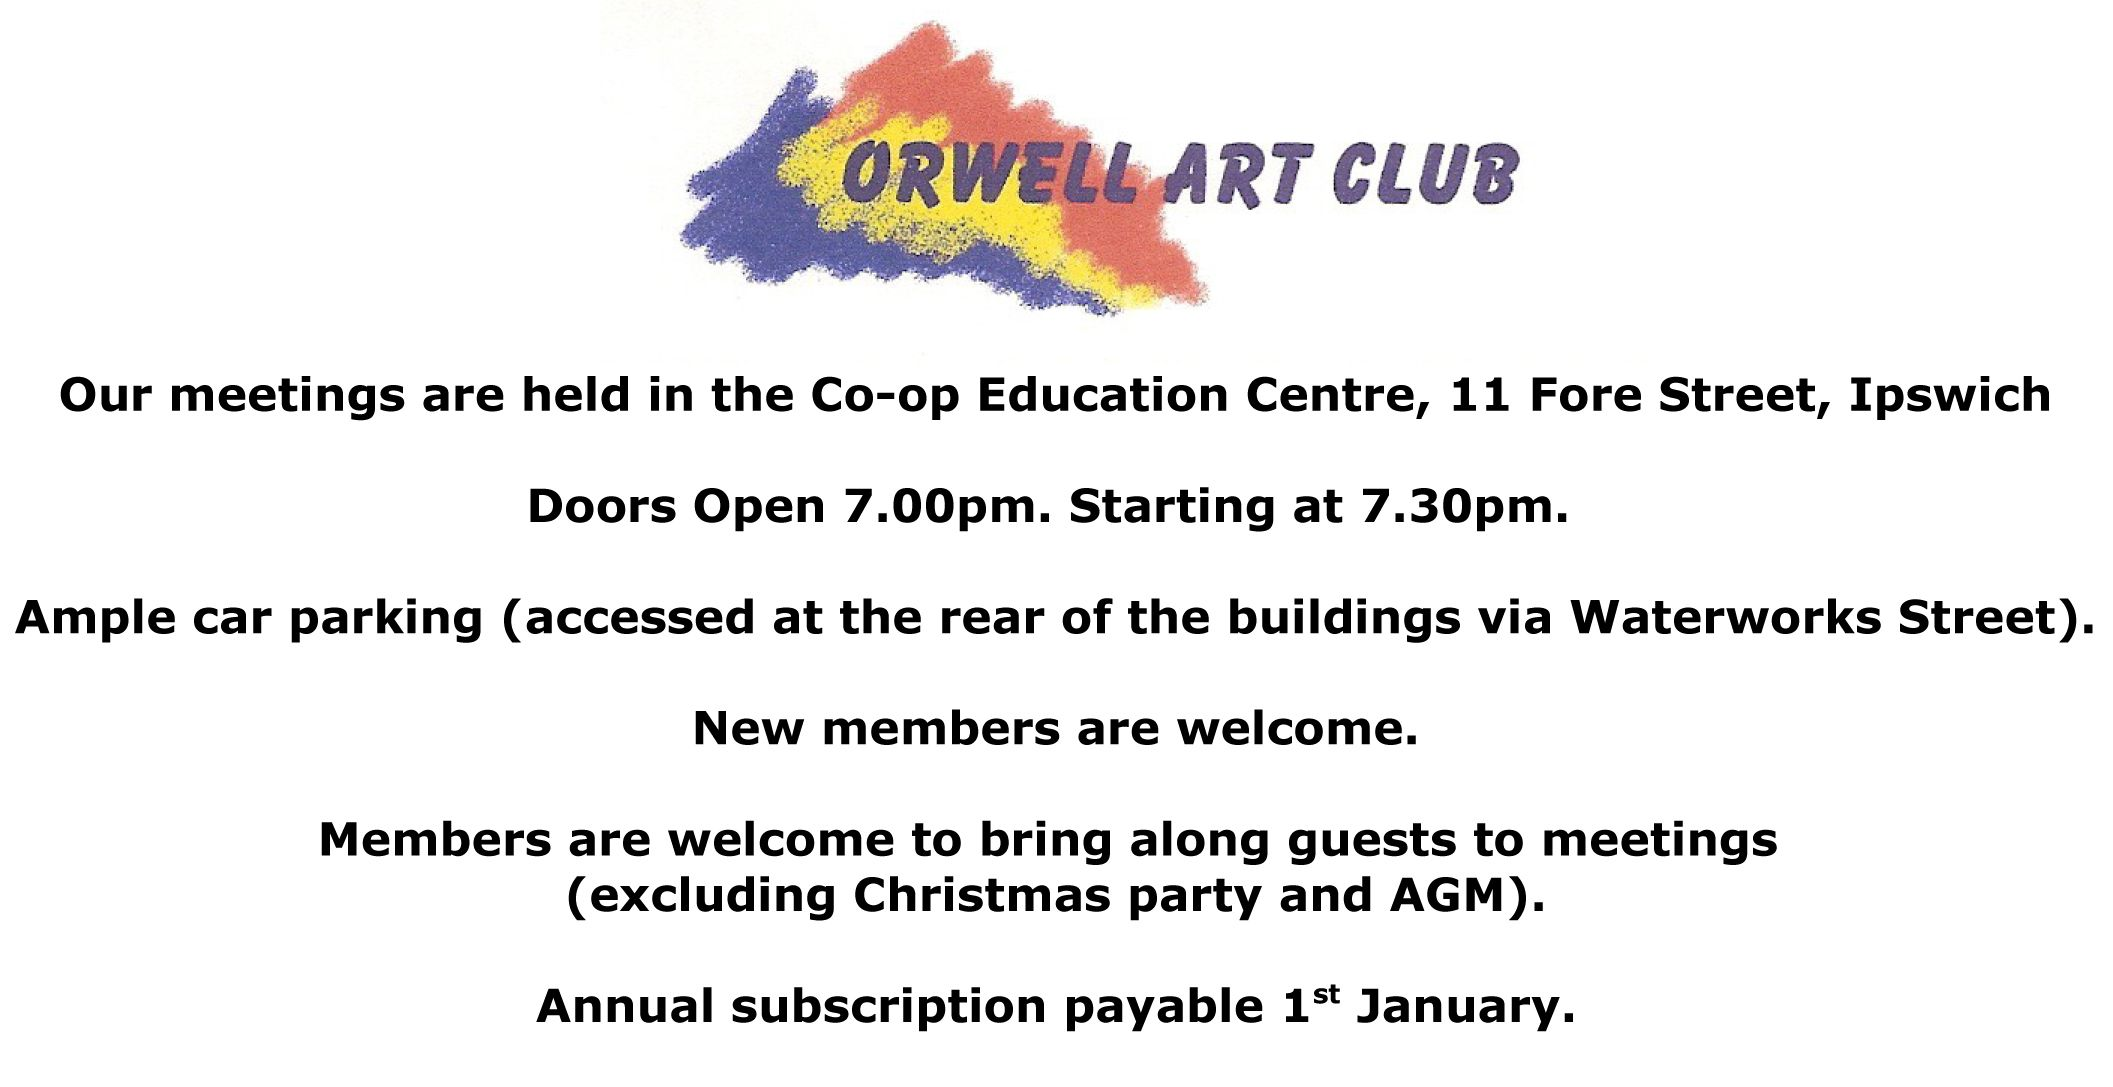 We are a friendly art club that meets in Ipswich. We welcome new members.